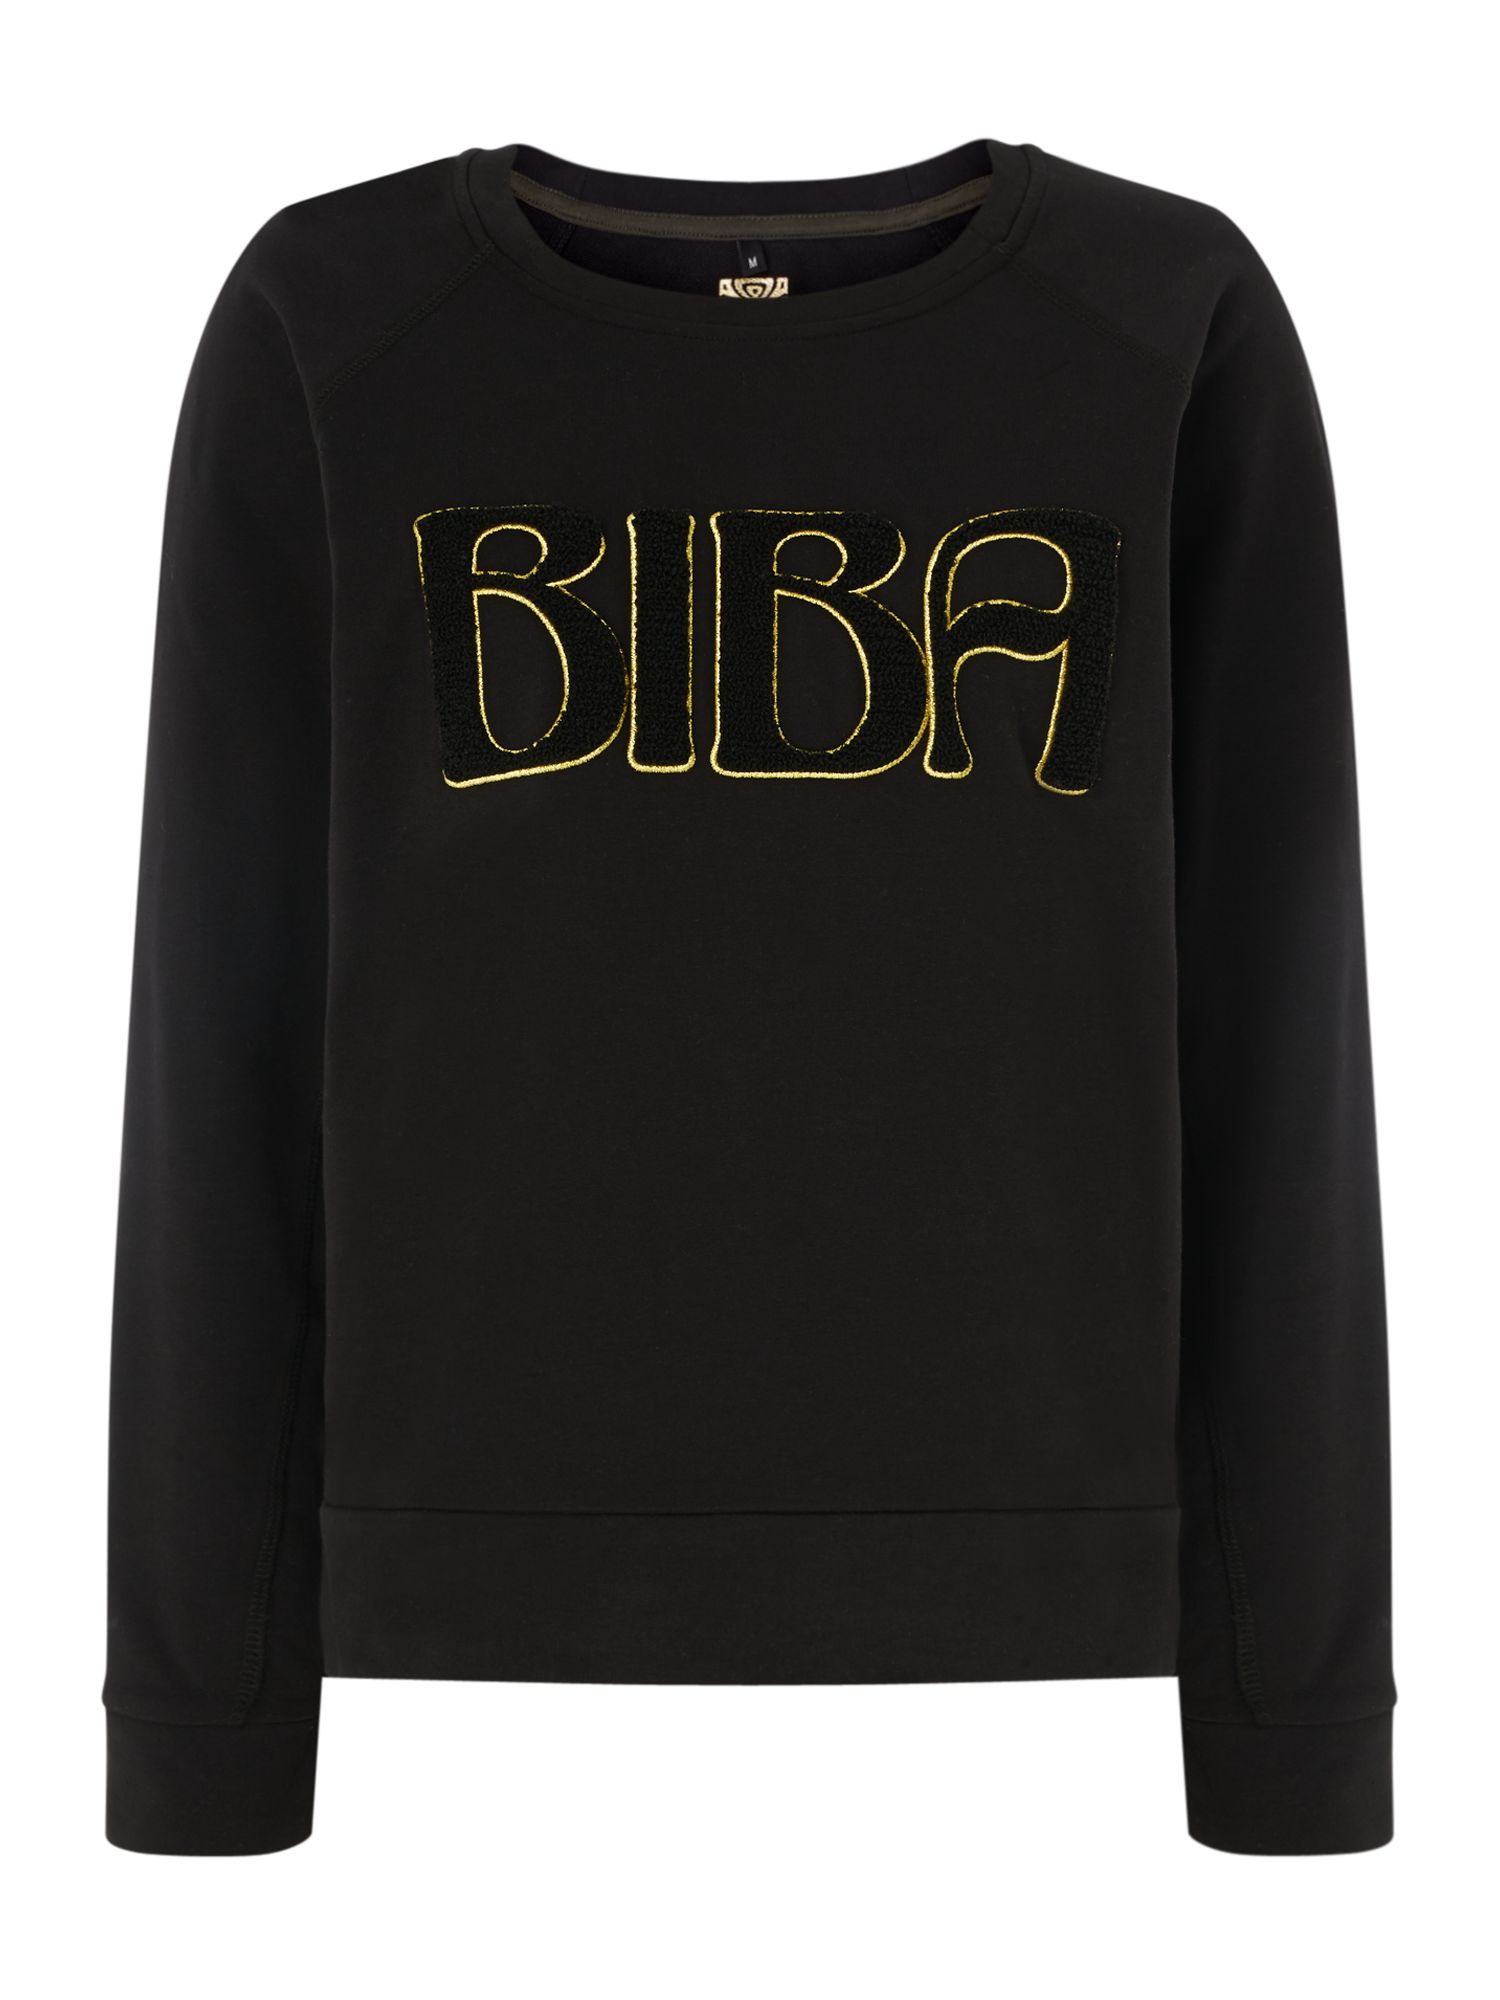 Biba Biba logo gym sweat, Black